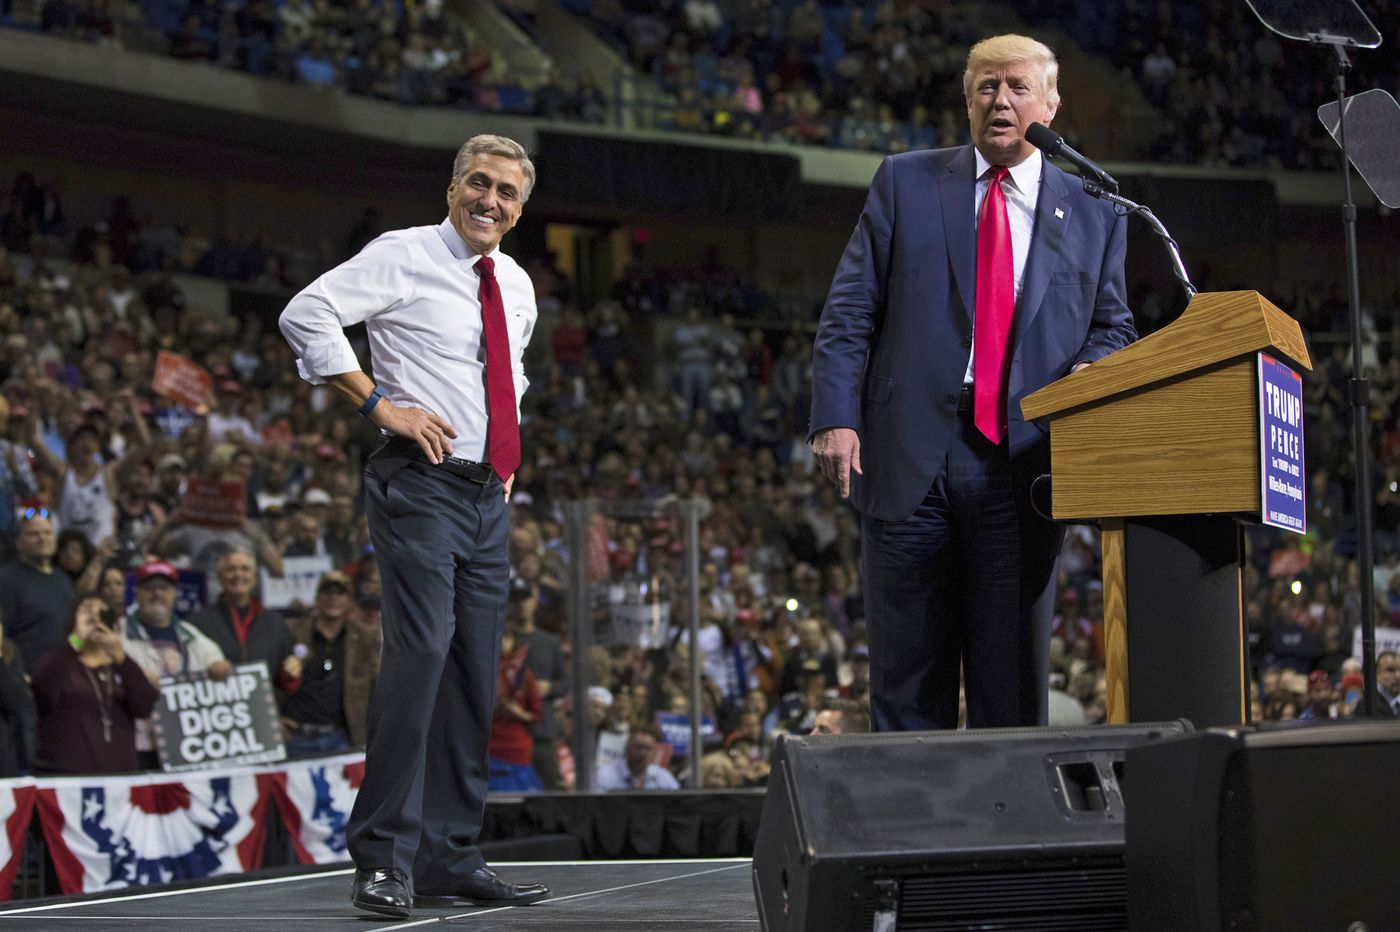 Lou Barletta rolls with Trump, as president shifts policy at border